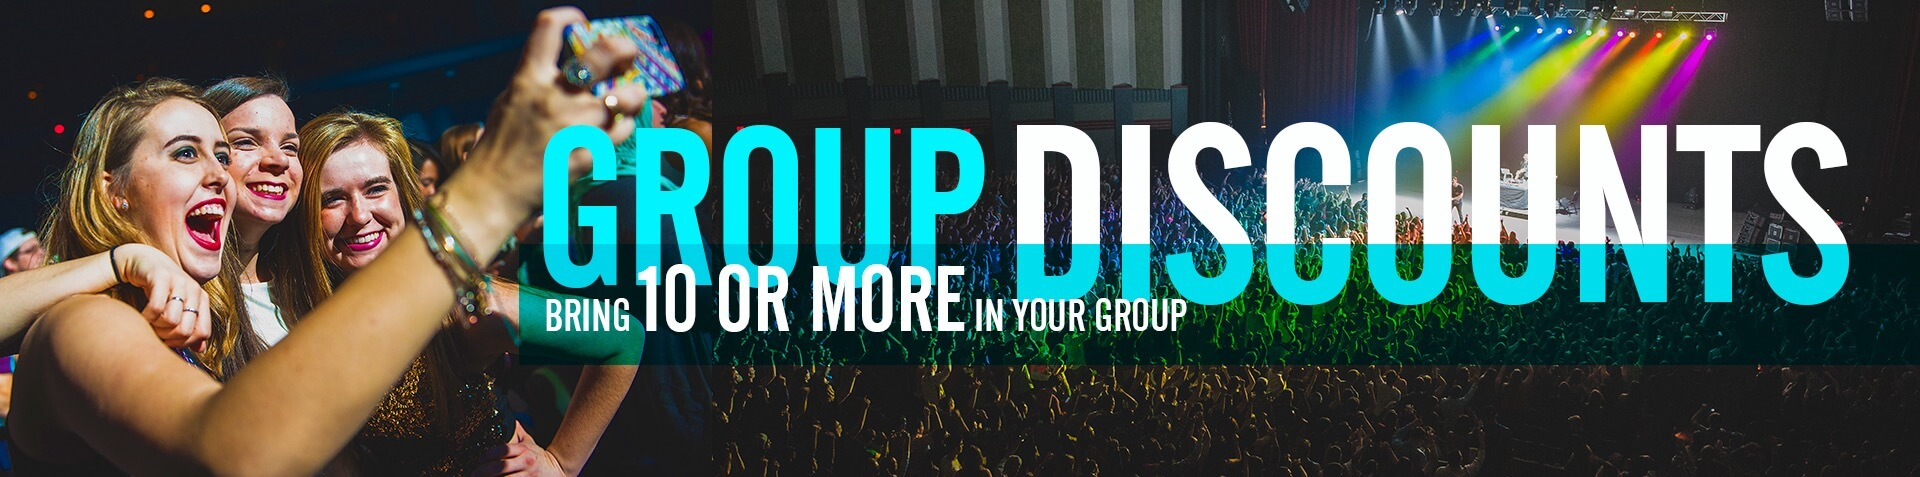 Group Discounts and group sales when you bring 10 or more people